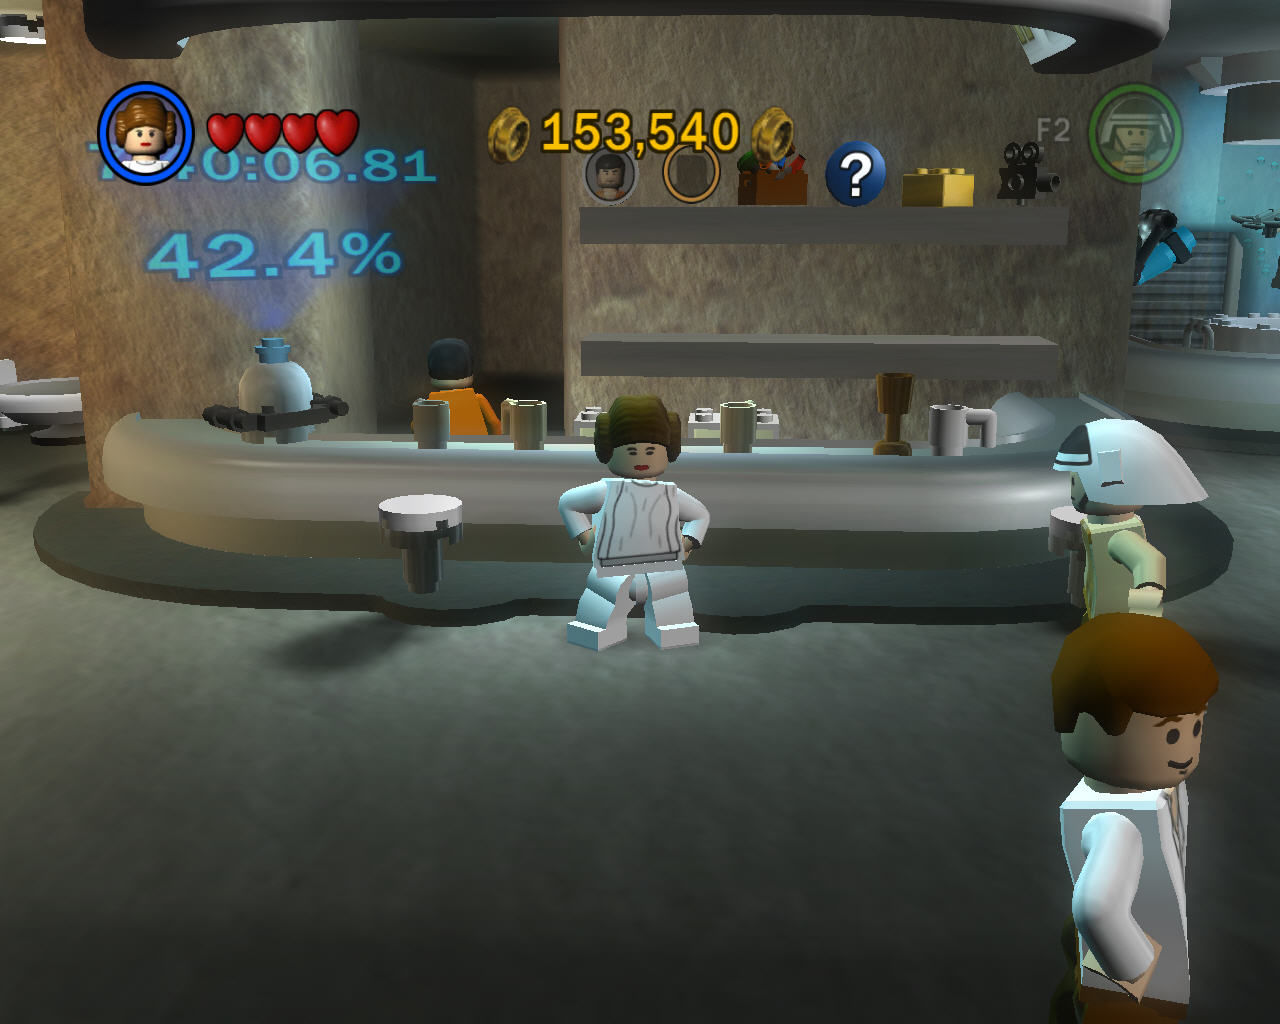 LEGO Star Wars II: The Original Trilogy Windows Mos Eisley Cantina. Here, you can buy hints, characters and special features which can help you through the game.